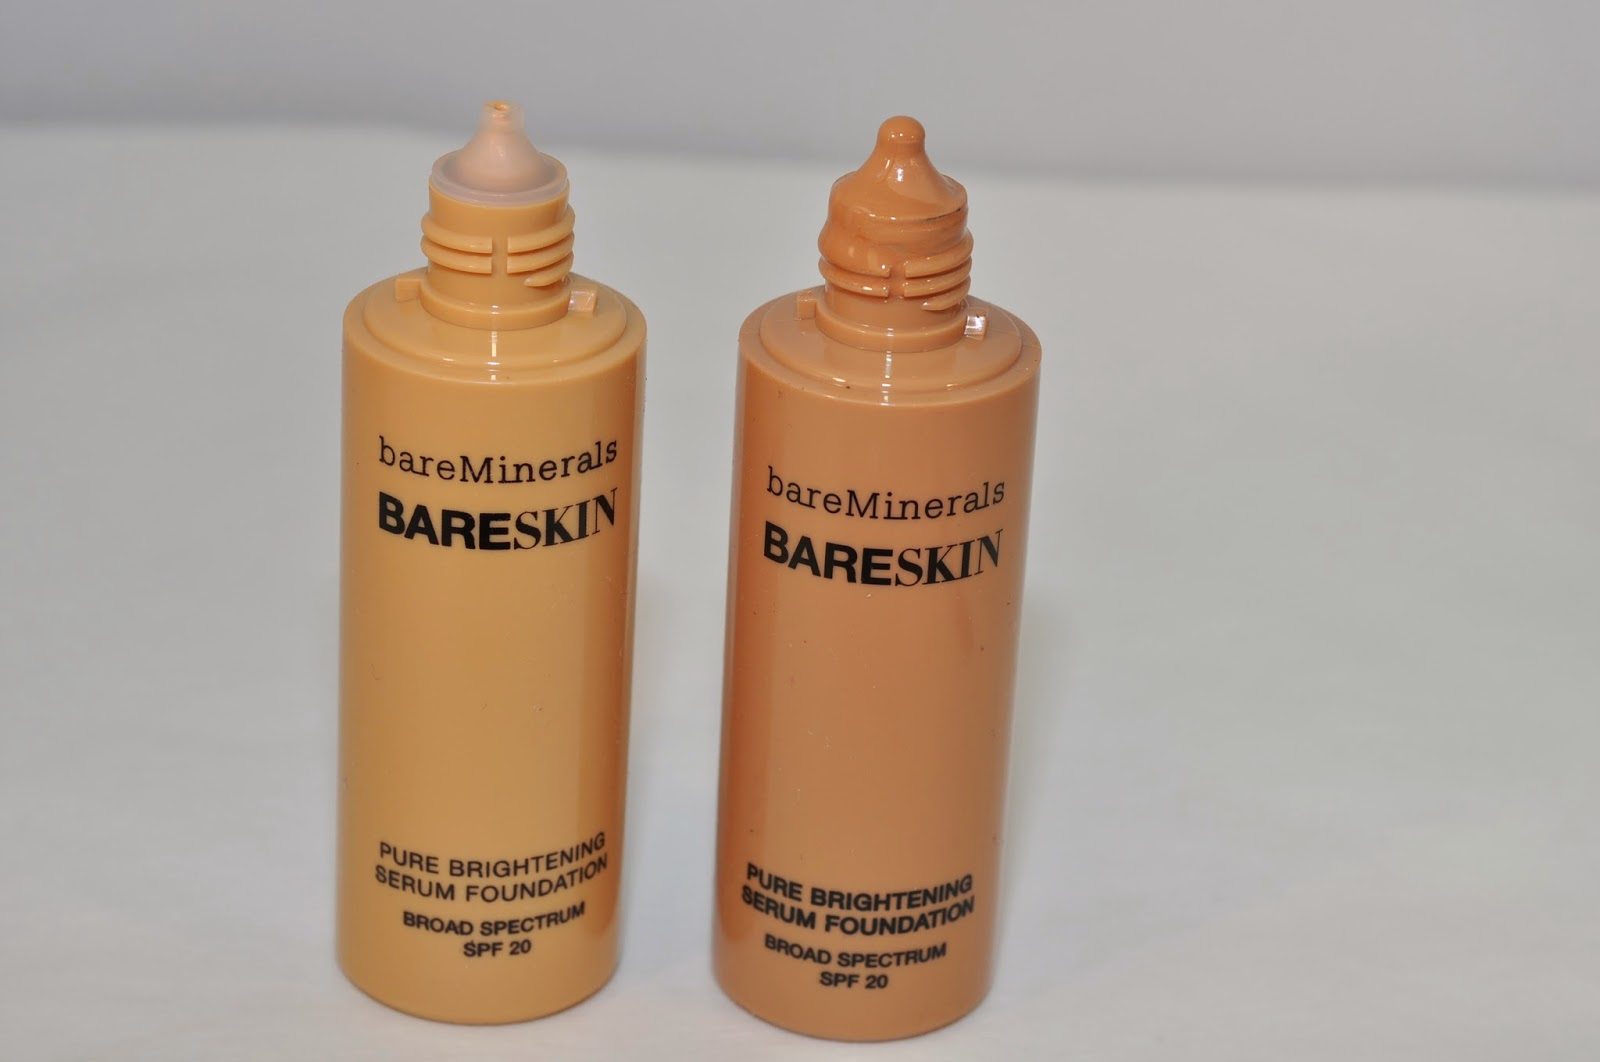 bareMinerals BareSkin Pure Brightening Serum Foundation in Bare Nude, Bare Latte